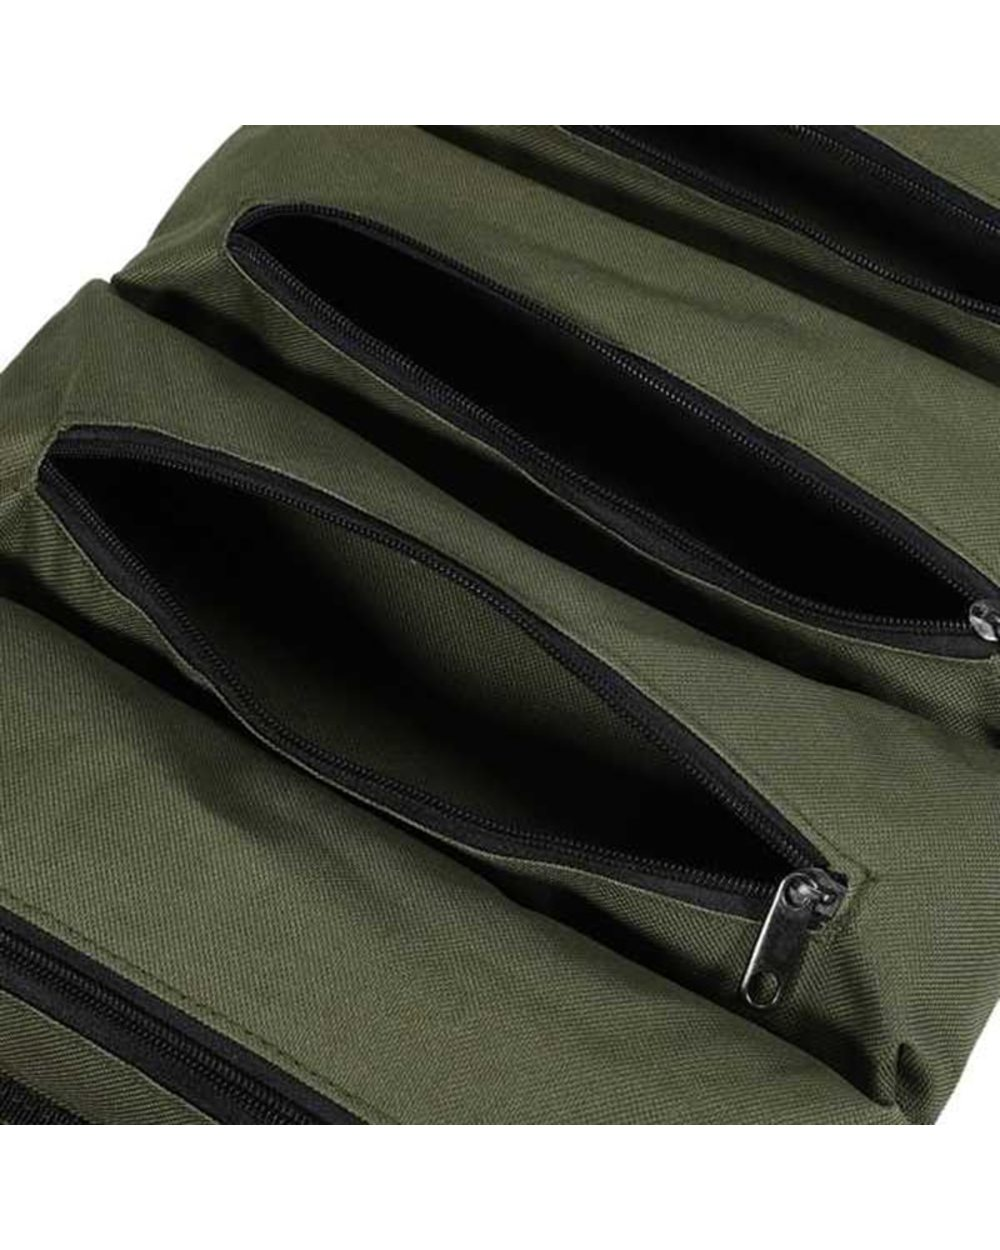 Multi-Purpose Zipper Carrier Roll Up Tote: Best Tool Pouch for Electricians  front-5